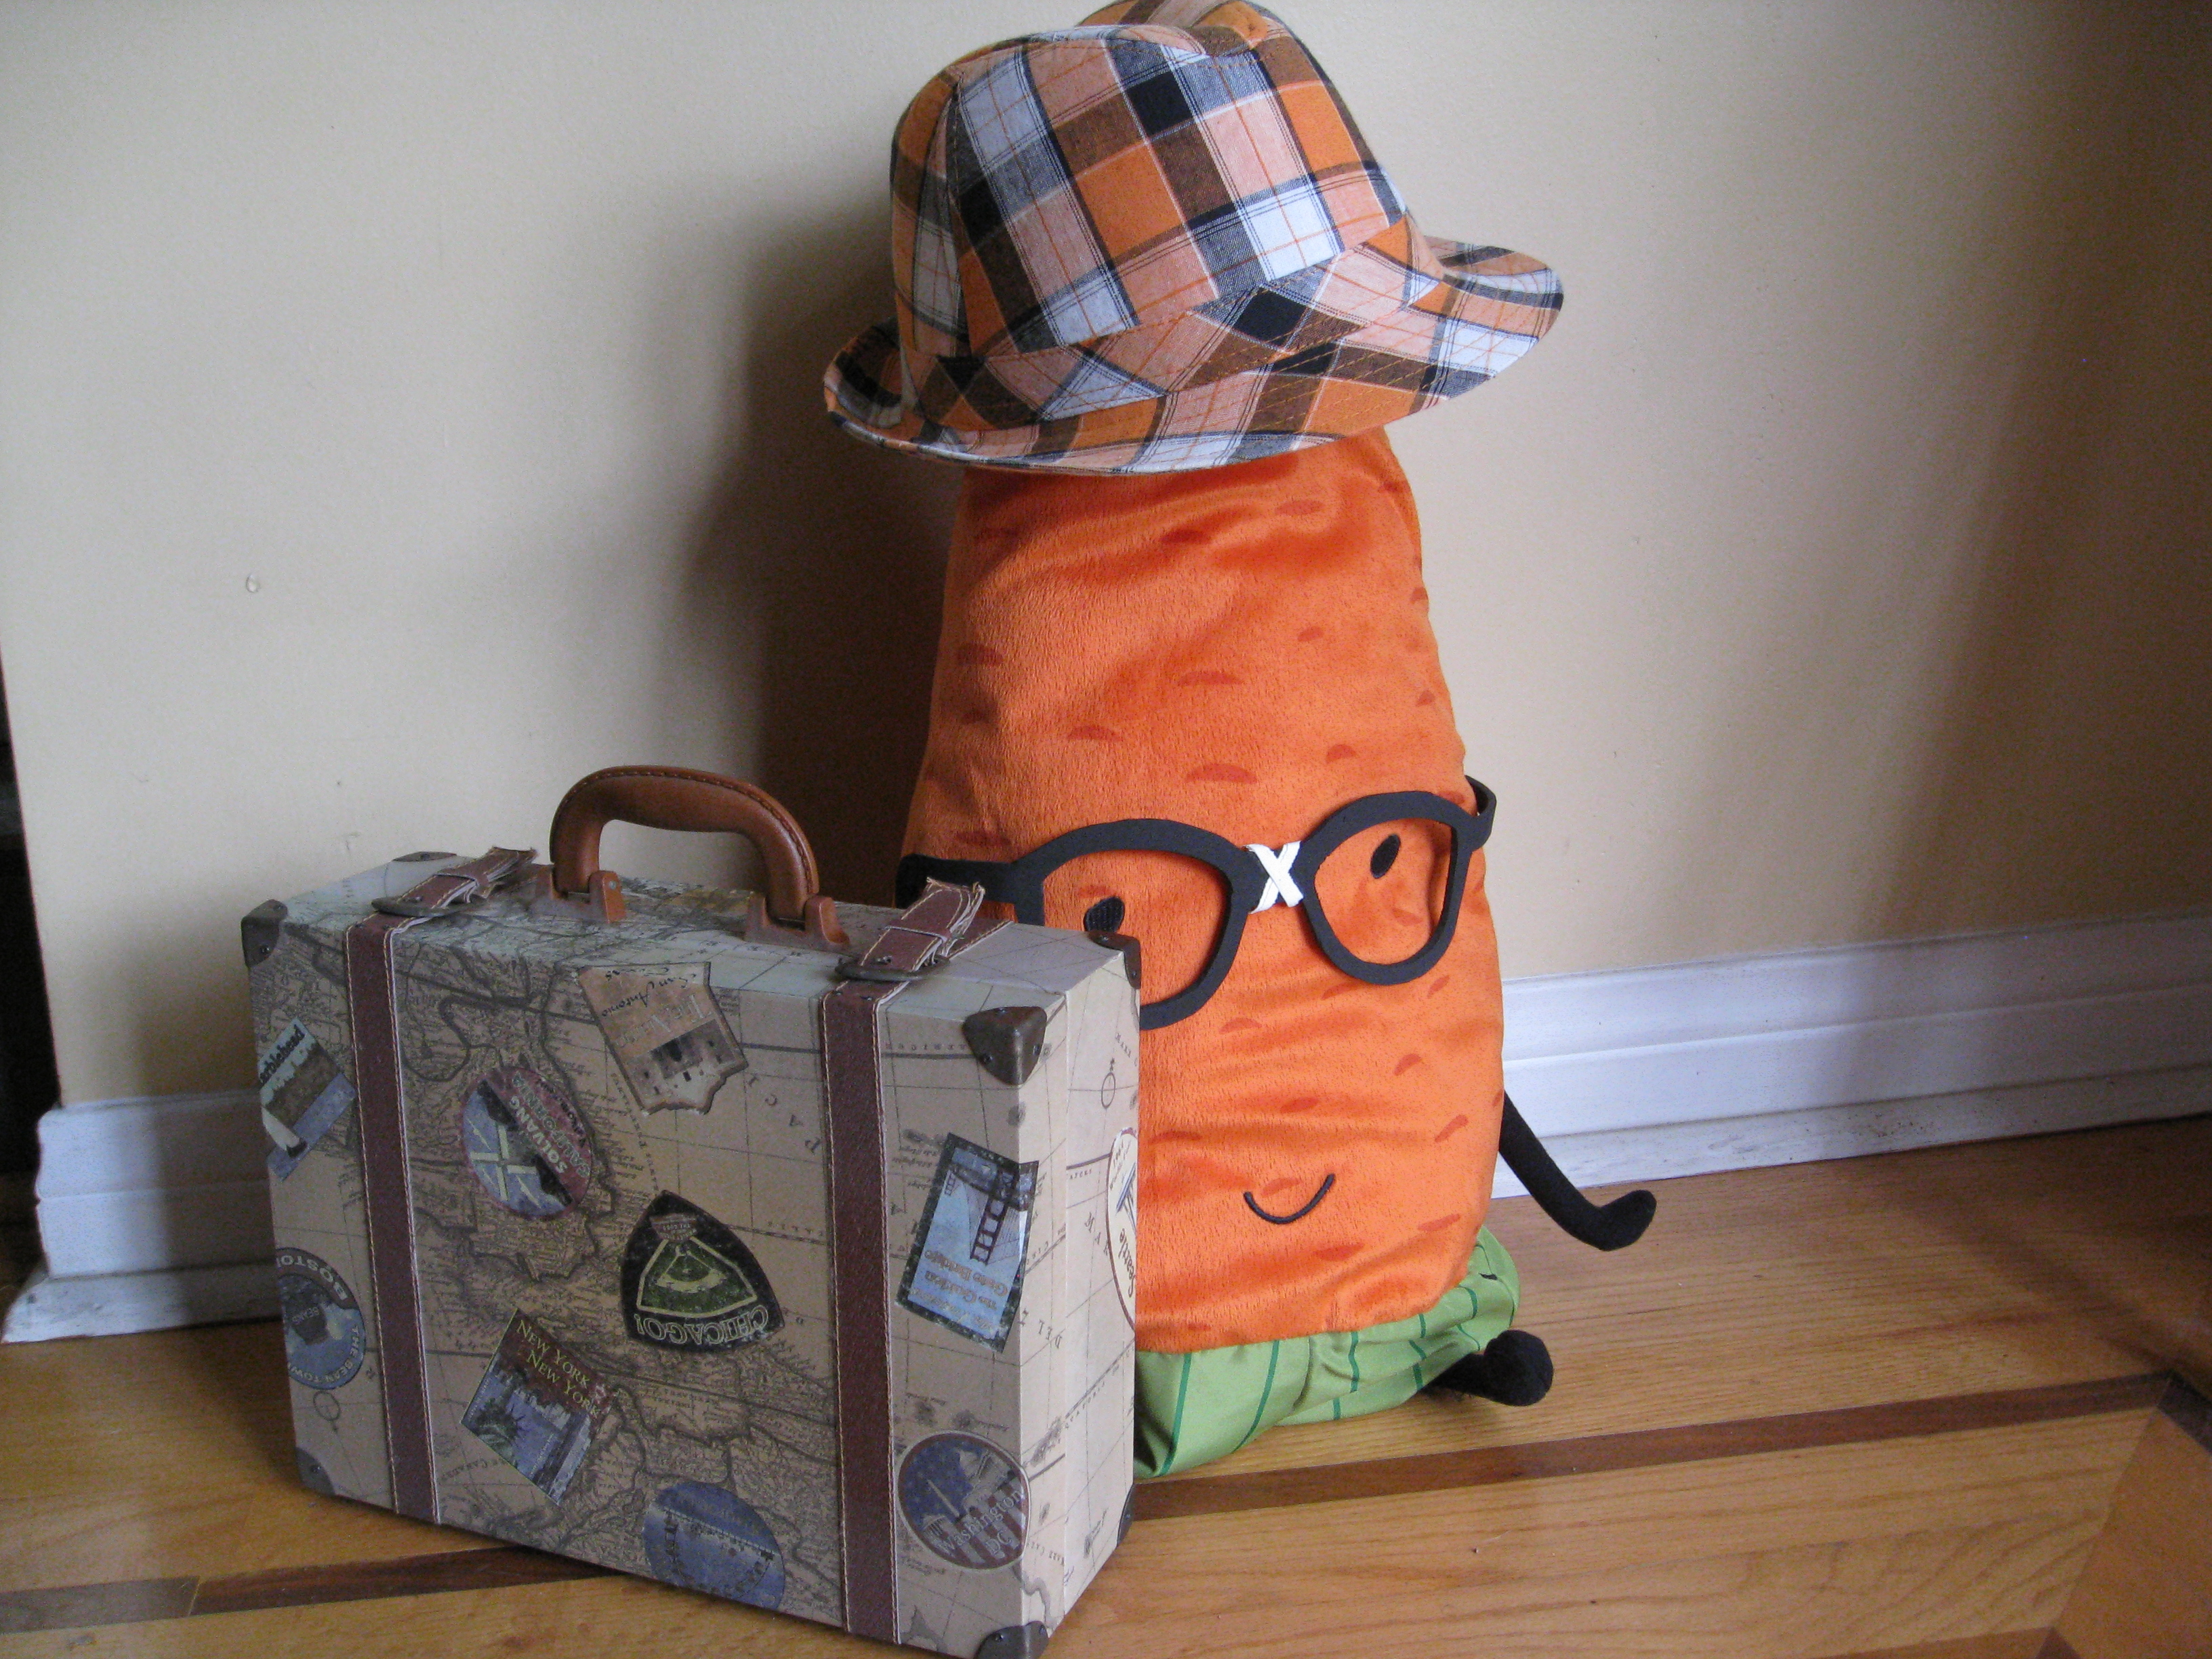 Bags are packed. Where shall we go?